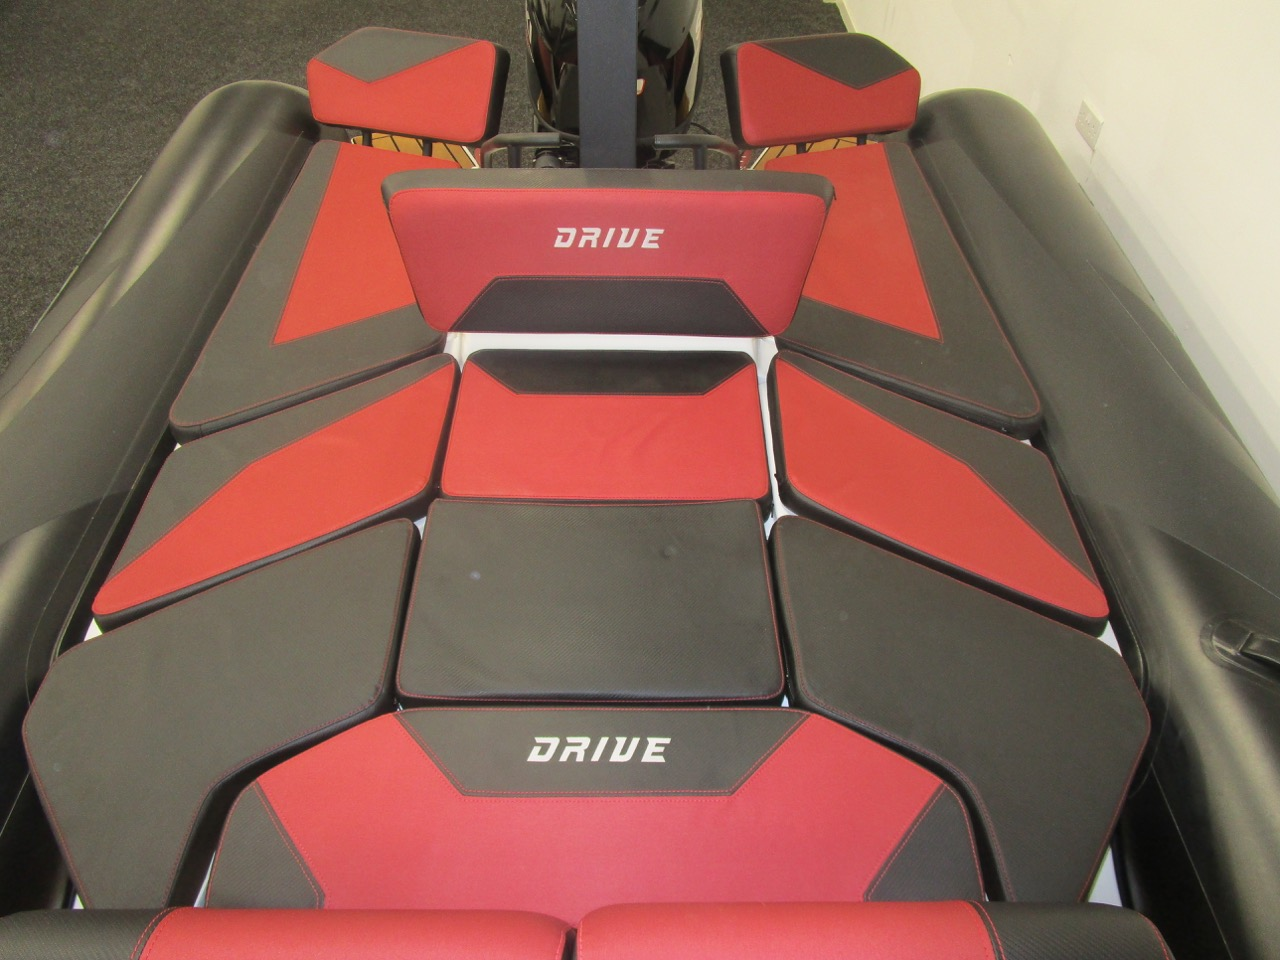 GRAND DRIVE D600 RIB full sundeck and to tube ends